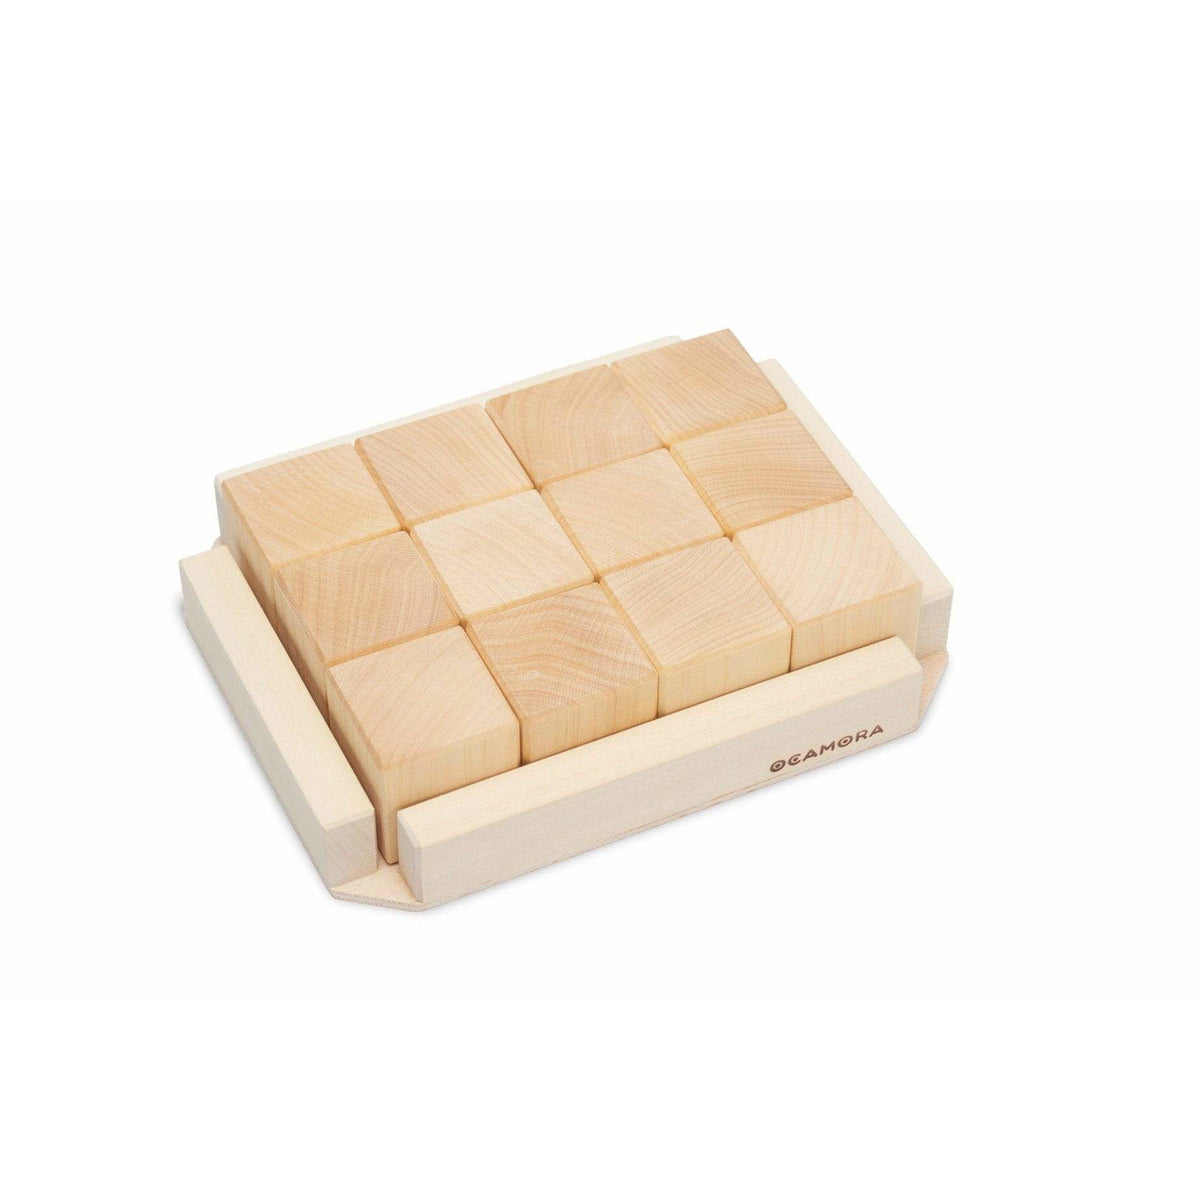 Ocamora Wooden Cubes: Natural